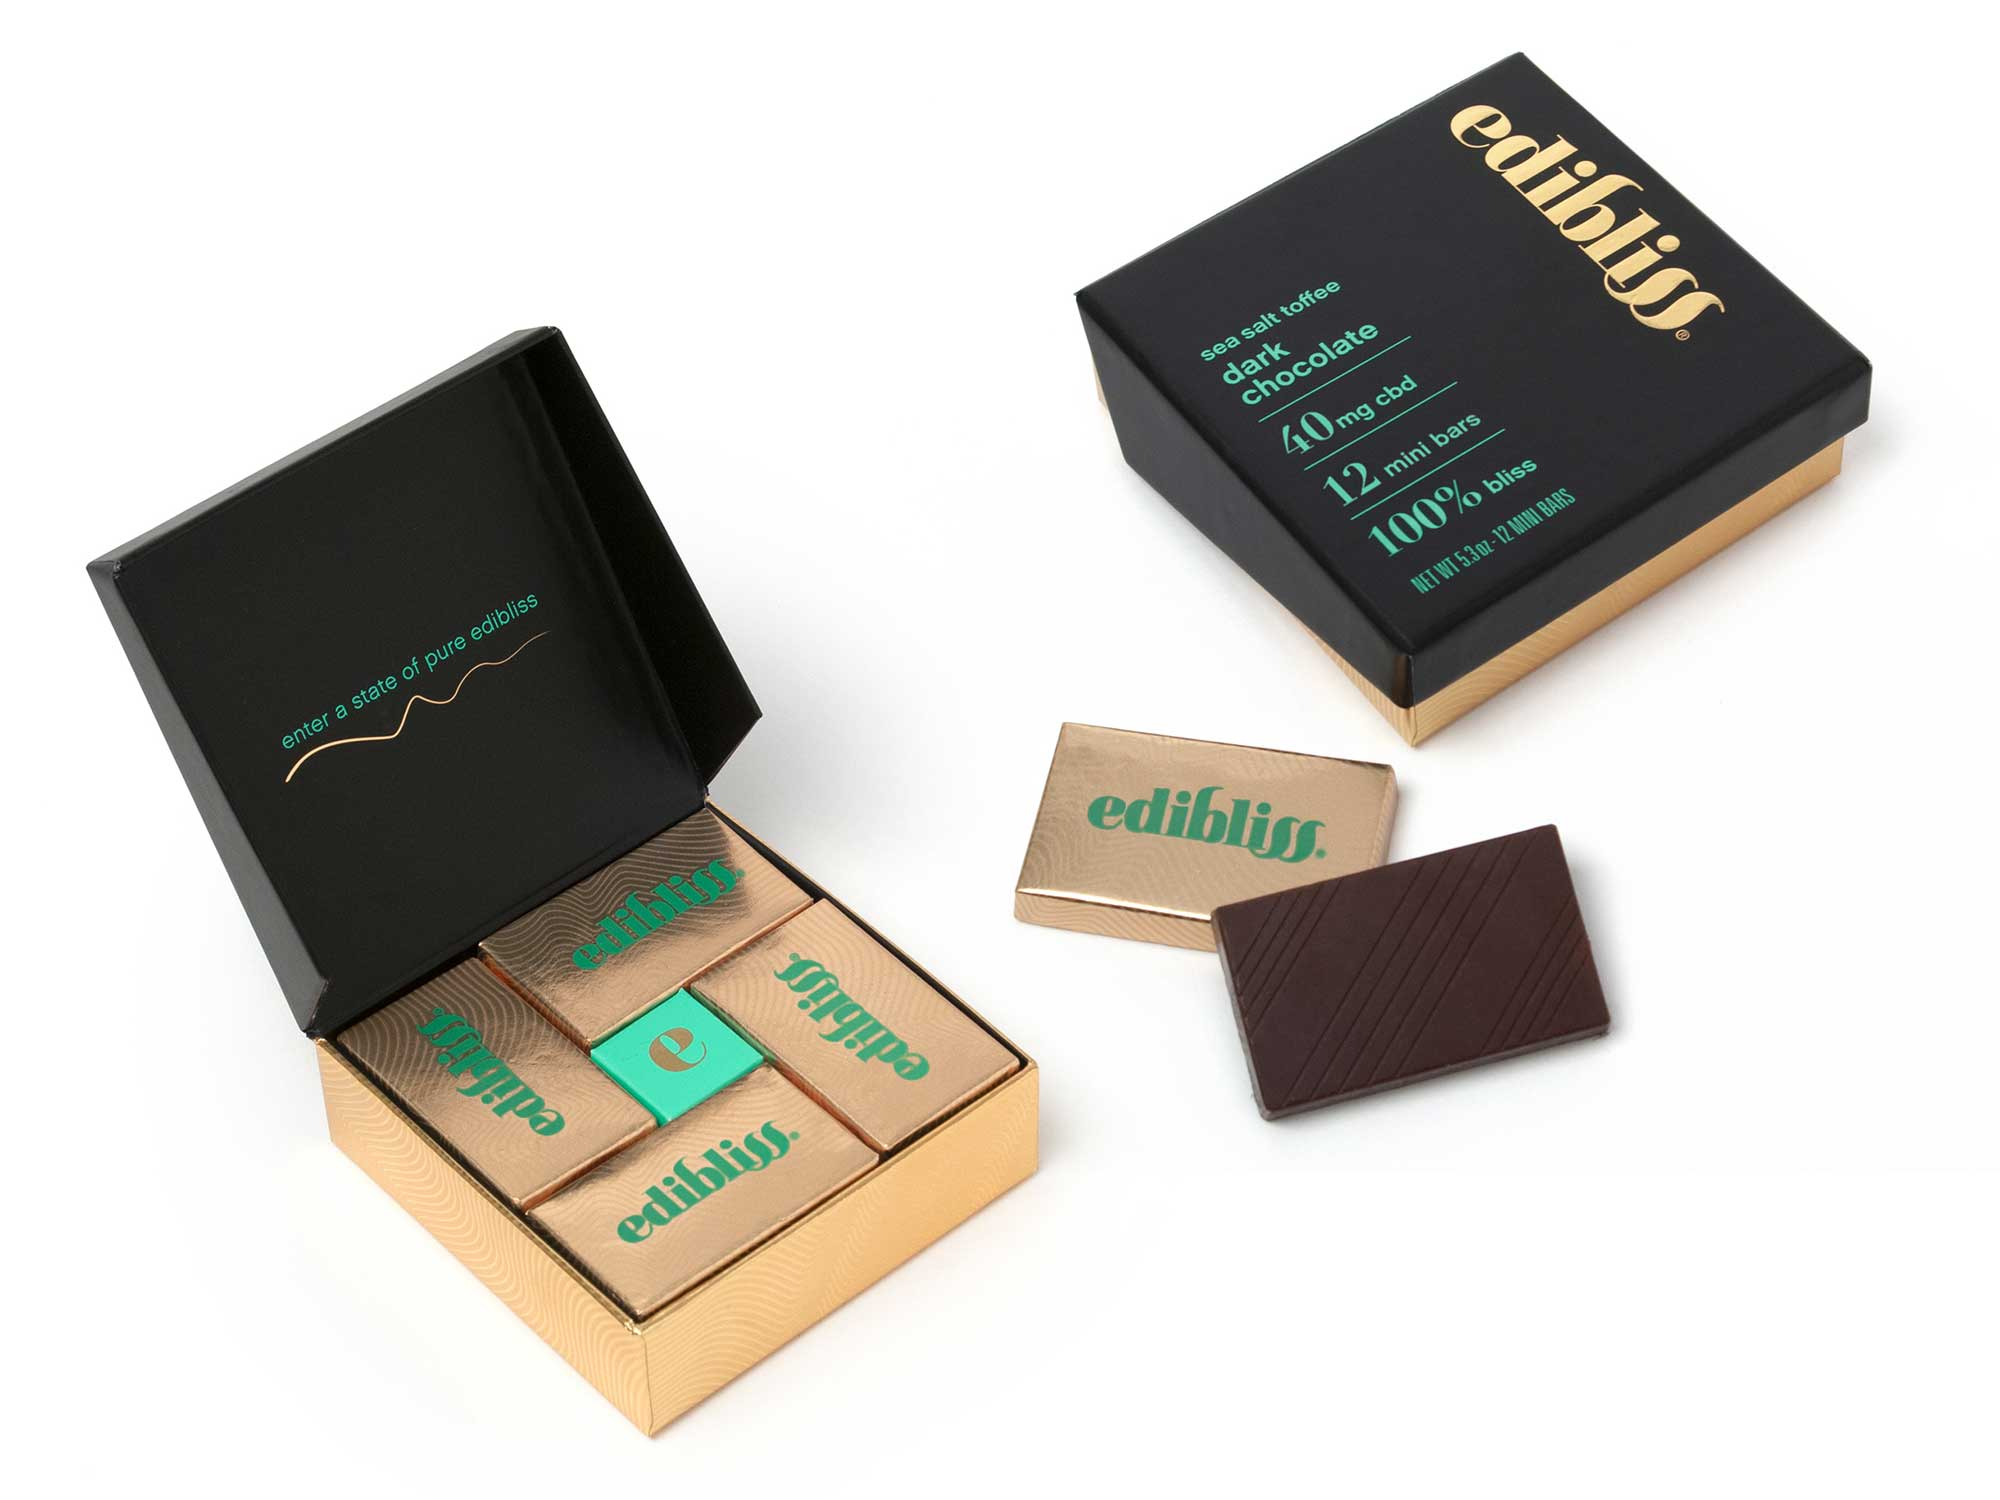 the Edibliss CBD chocolate packaging is artisanal and sophisticated in design, utilizing a rich color palette paired with gold foil treatments to clearly communicate exceptional quality, flavor variations and wellness benefits.